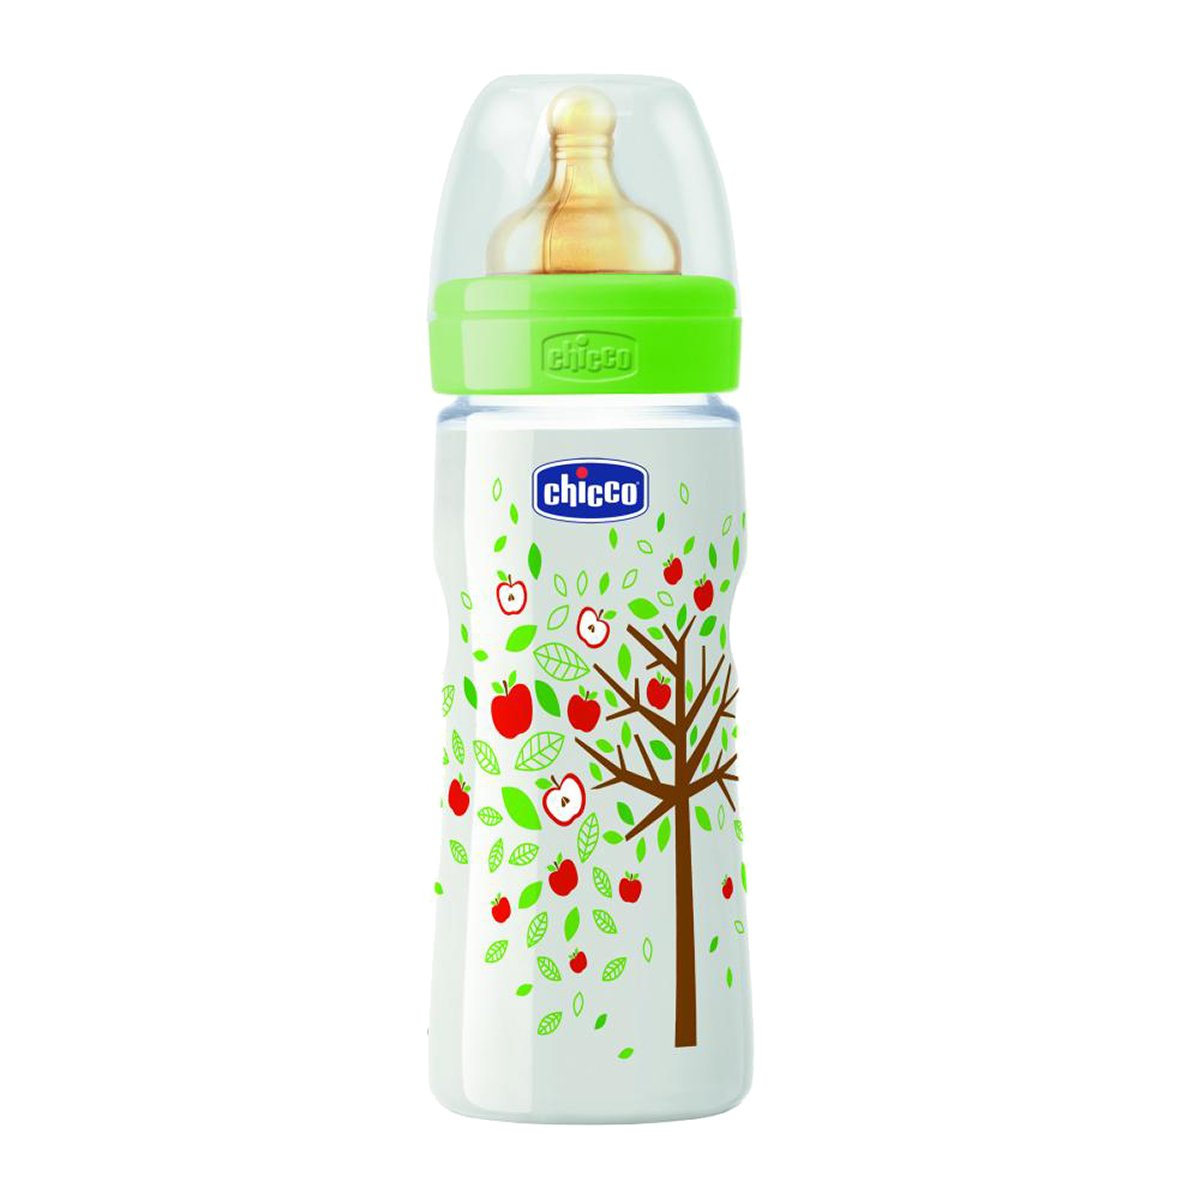 biberon chicco wellbeing pp cu tetina latex, +4 luni+, 330ml